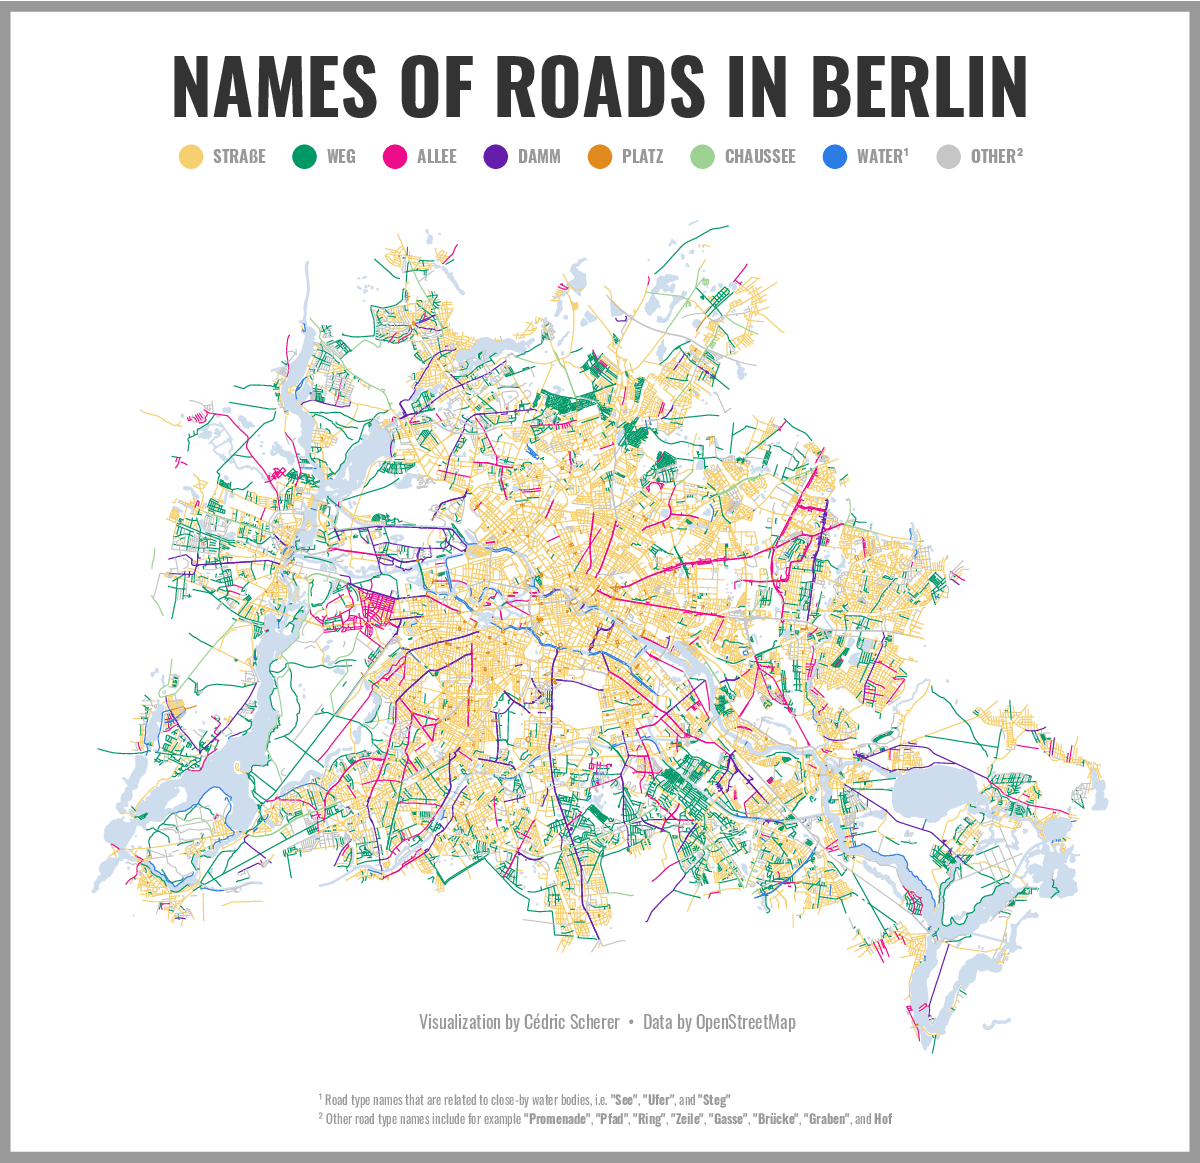 ./Day15_Names/Names_BerlinRoads.png